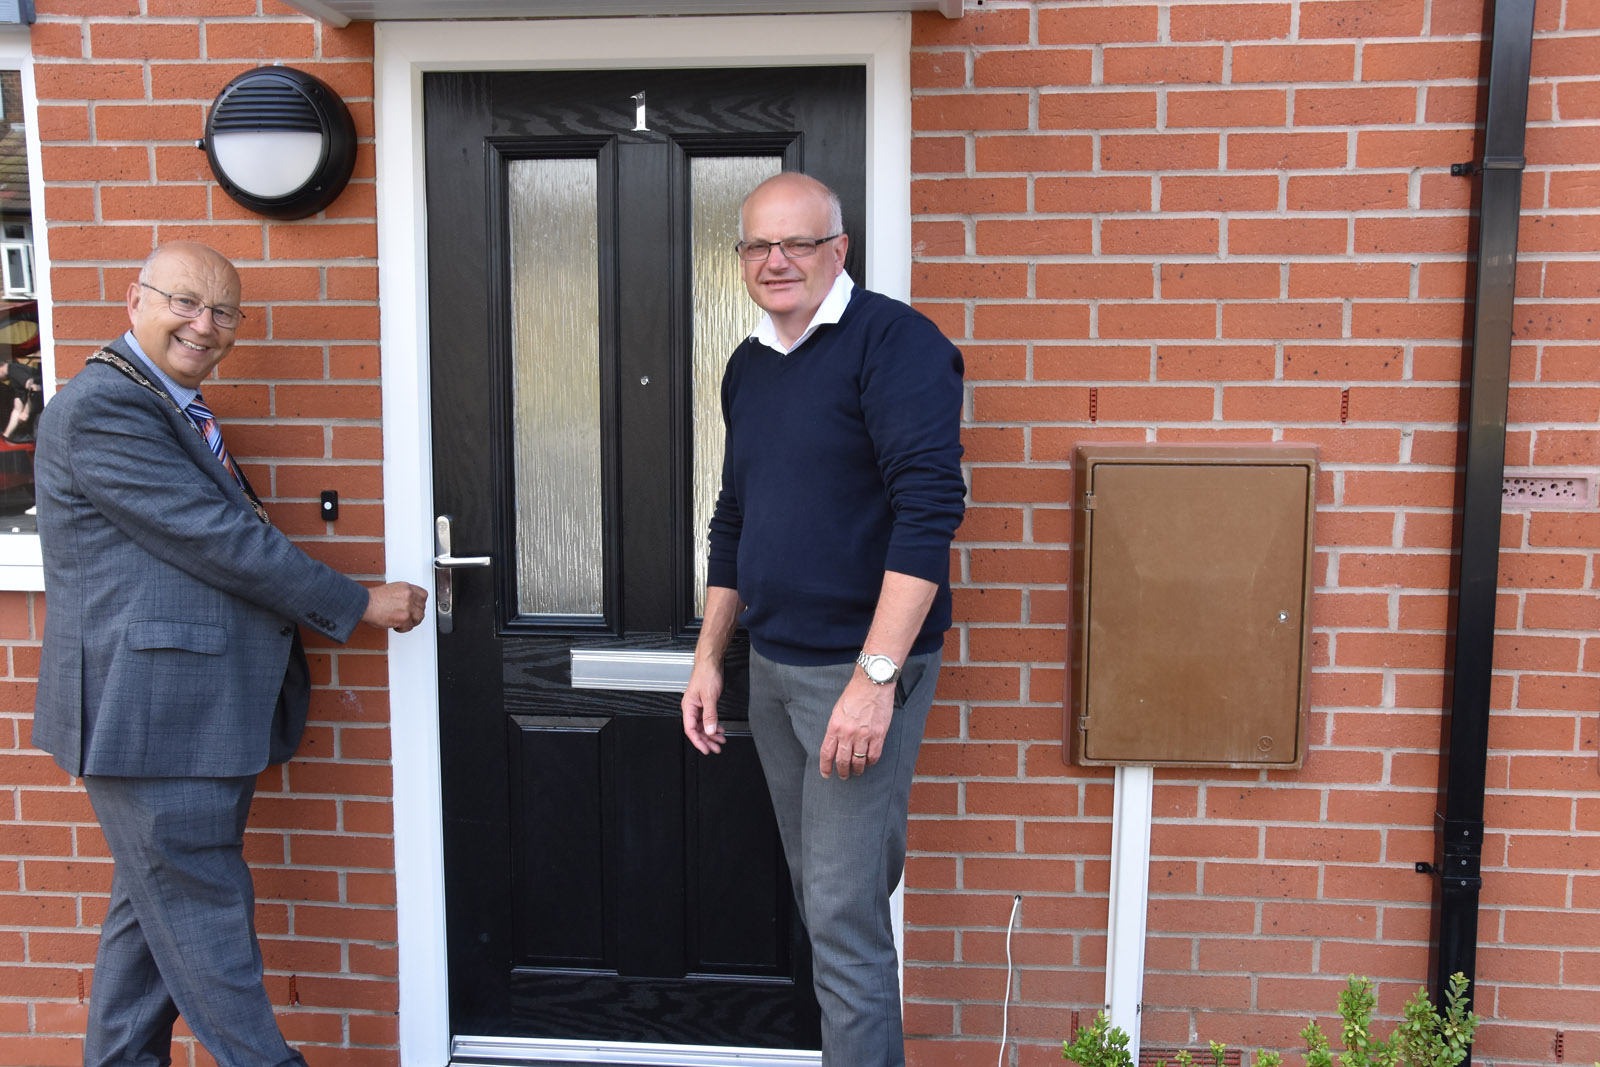 Five more new properties completed in multi-million pound council housebuilding scheme